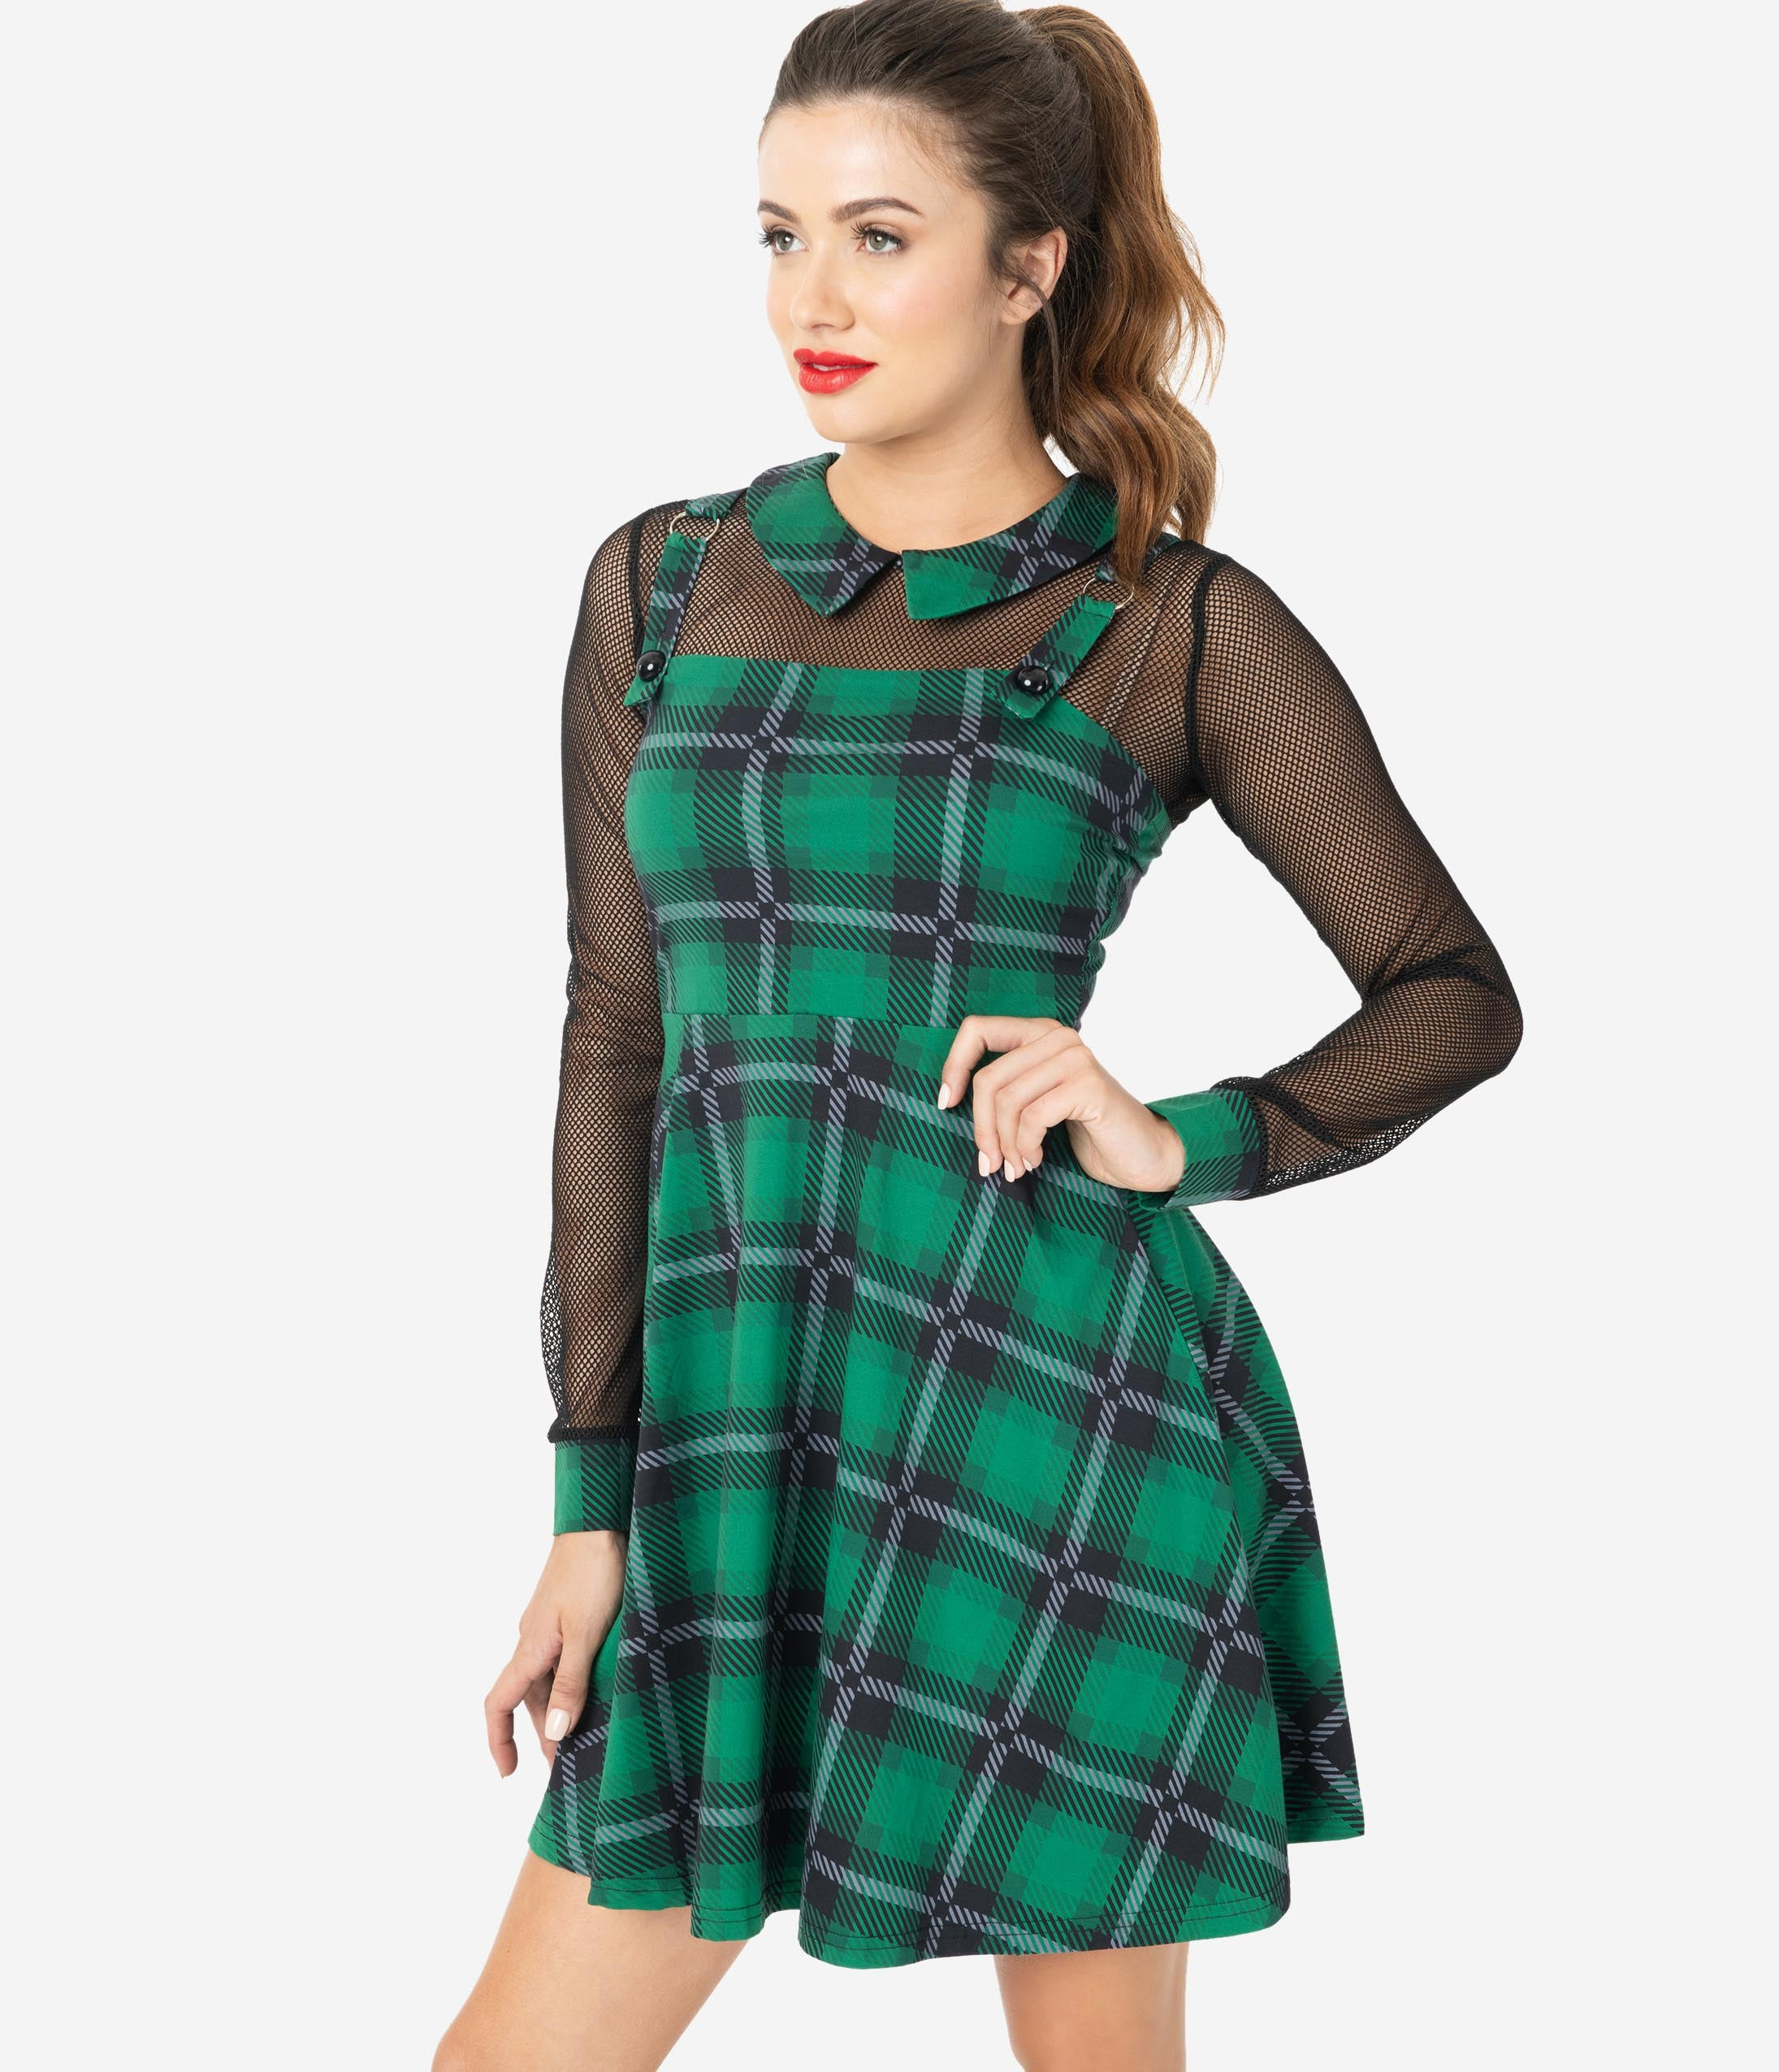 Vintage Christmas Gift Ideas for Women 1960S Style Green  Black House Tartan Mesh Sleeve Fit  Flare Dress $88.00 AT vintagedancer.com